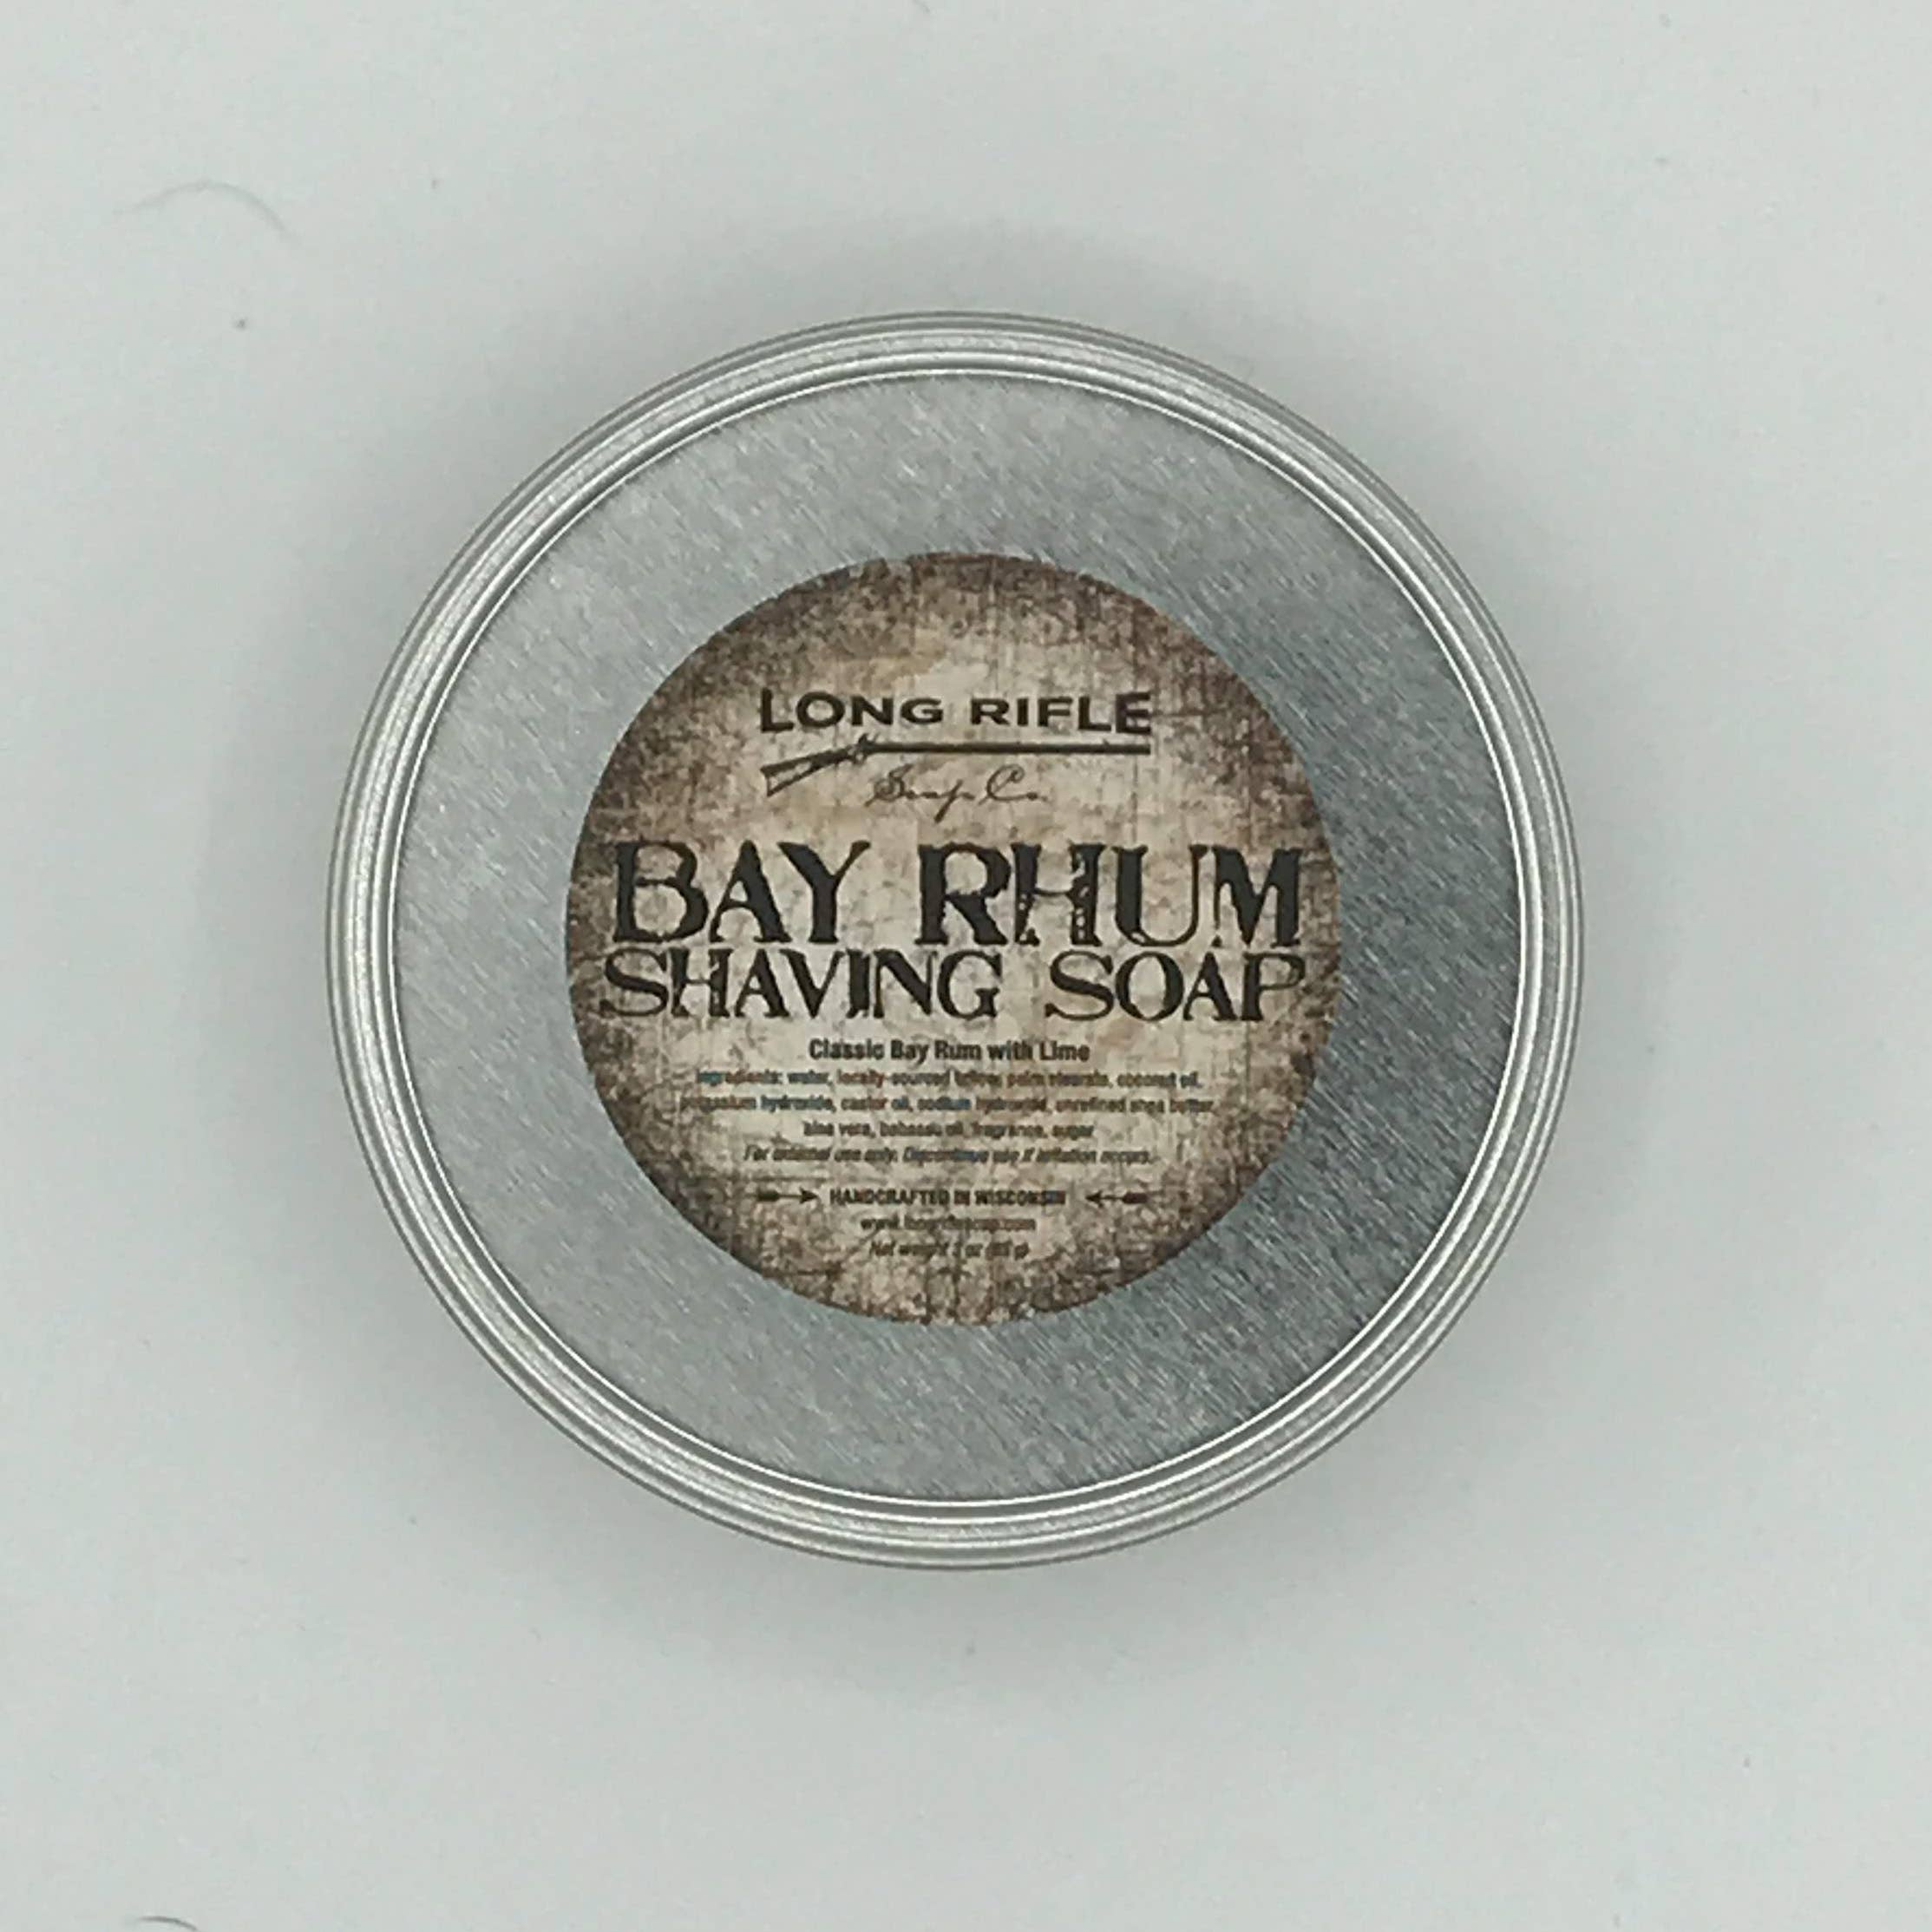 Long Rifle Soap Company - Shaving Puck - Bay Rhum - Men's Grooming